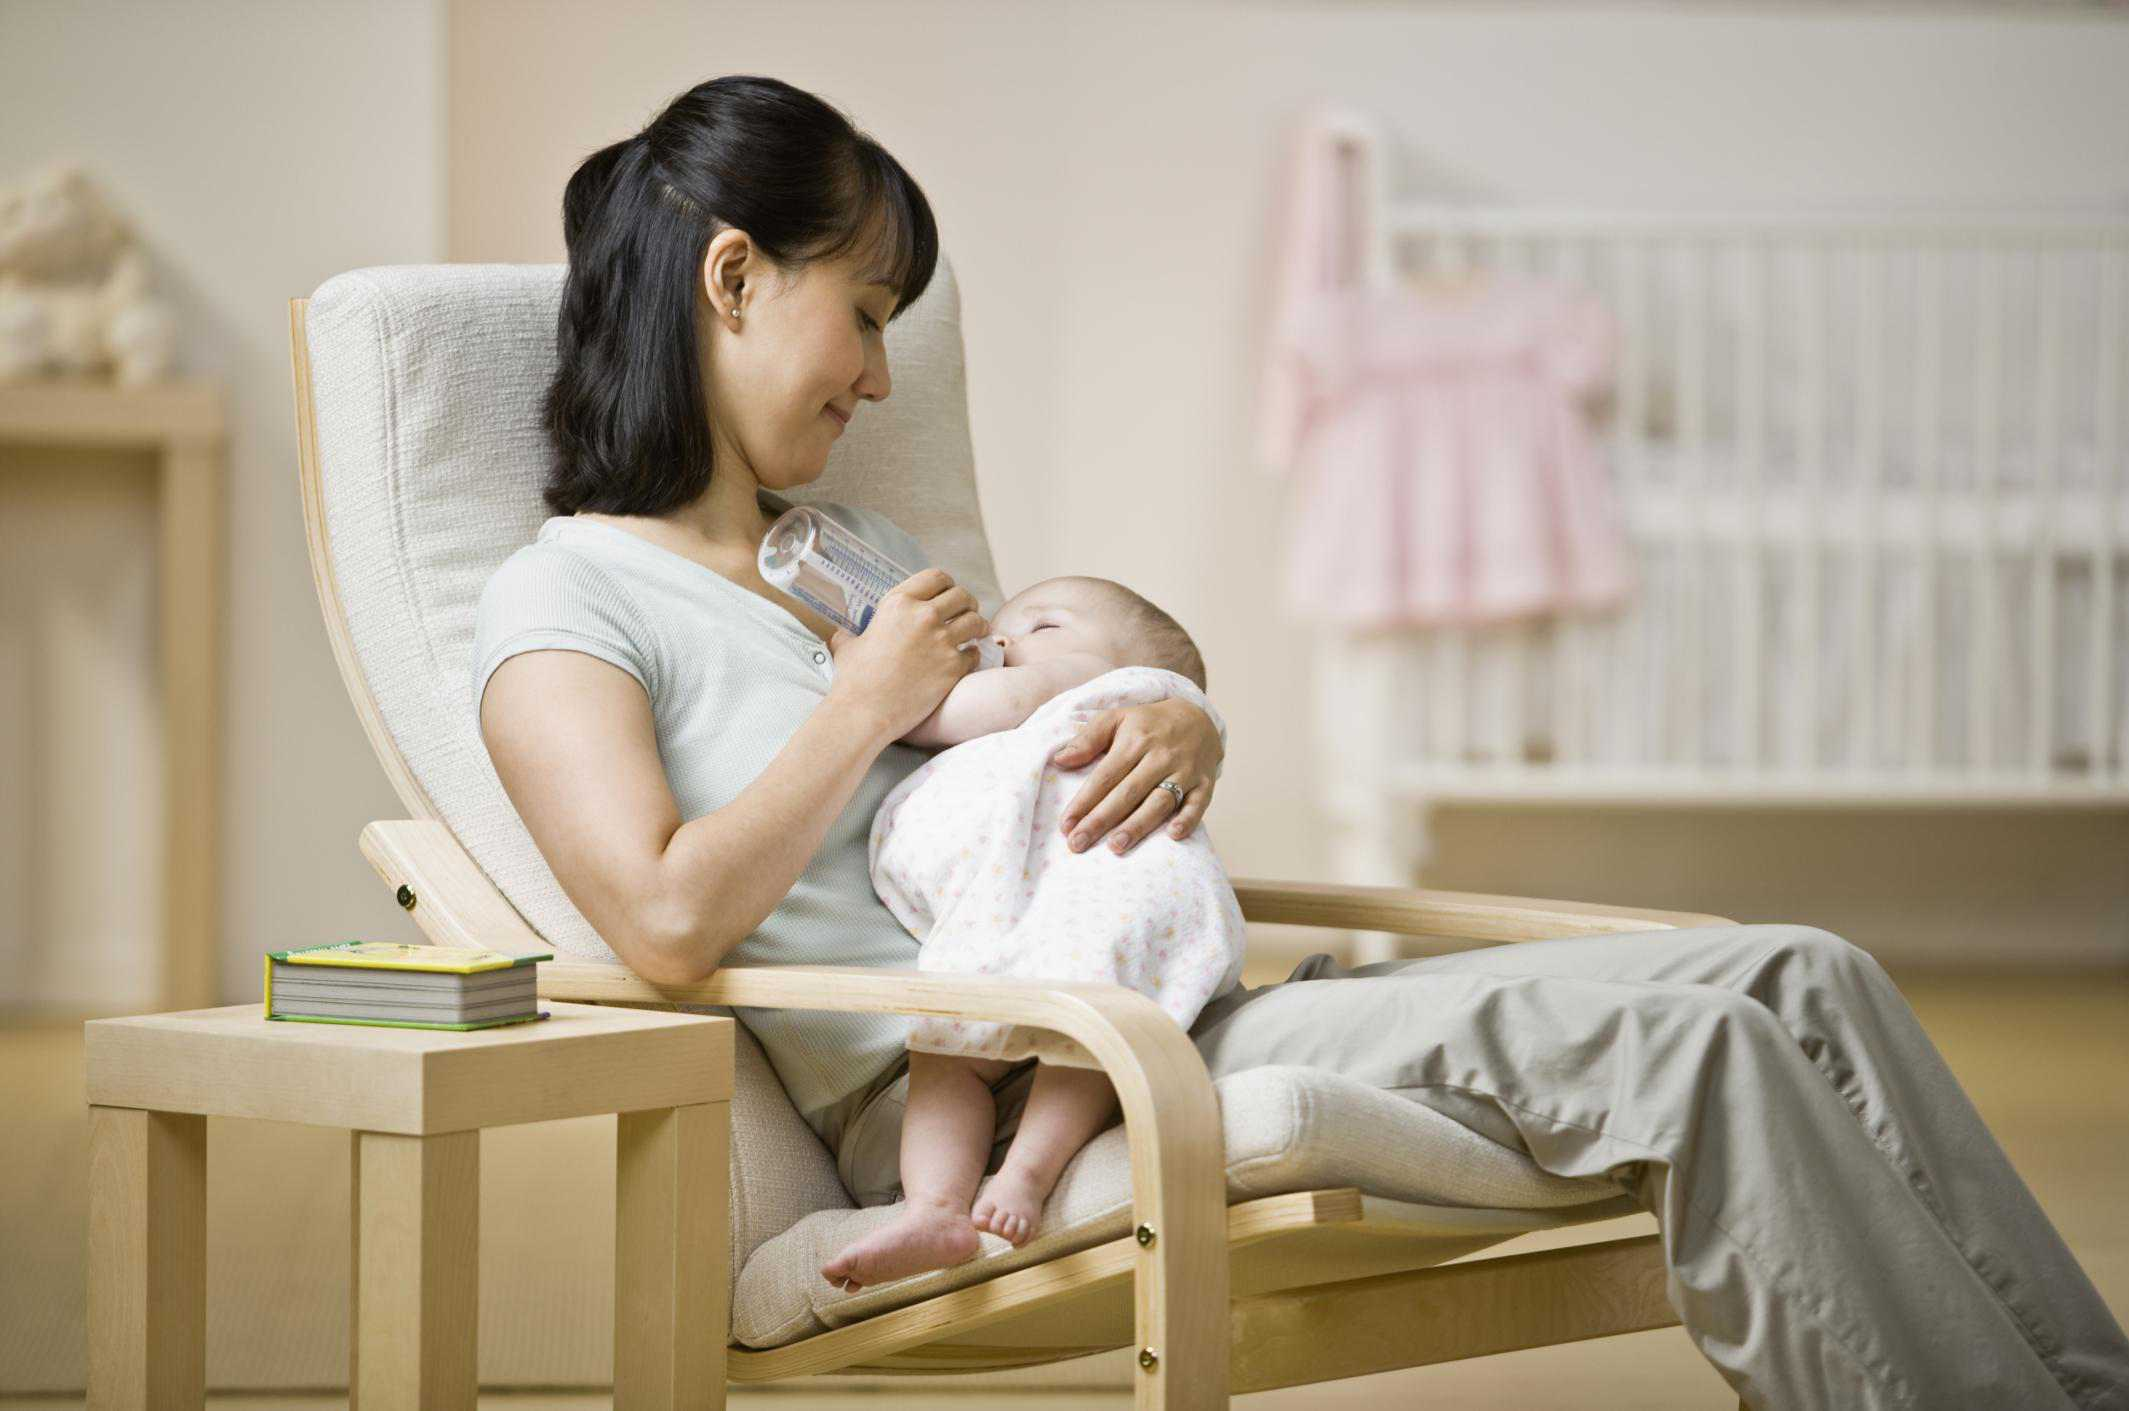 chairs for baby room target high chair 5 tips choosing a breastfeeding the nursery asian mother feeding